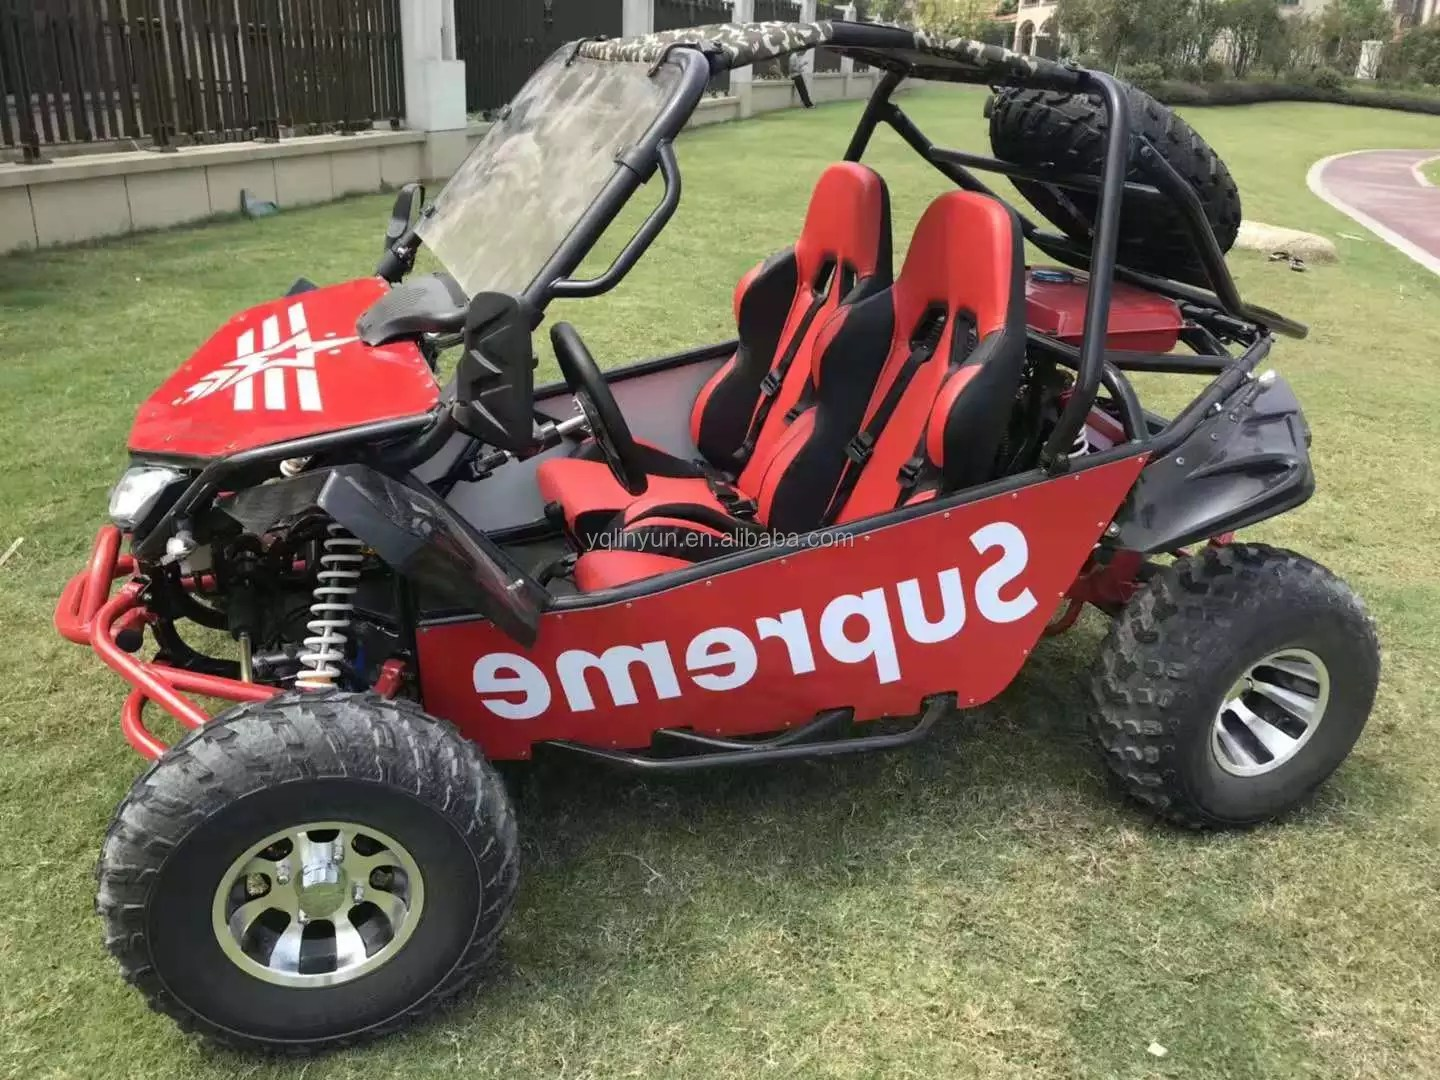 Kart Cross Buggy Build 200cc Go Karts Buggy For Sale Malaysia Kart Cross Buggy Buy Buggy For Sale Malaysia Kart Cross Buggy Go Karts Product On Alibaba